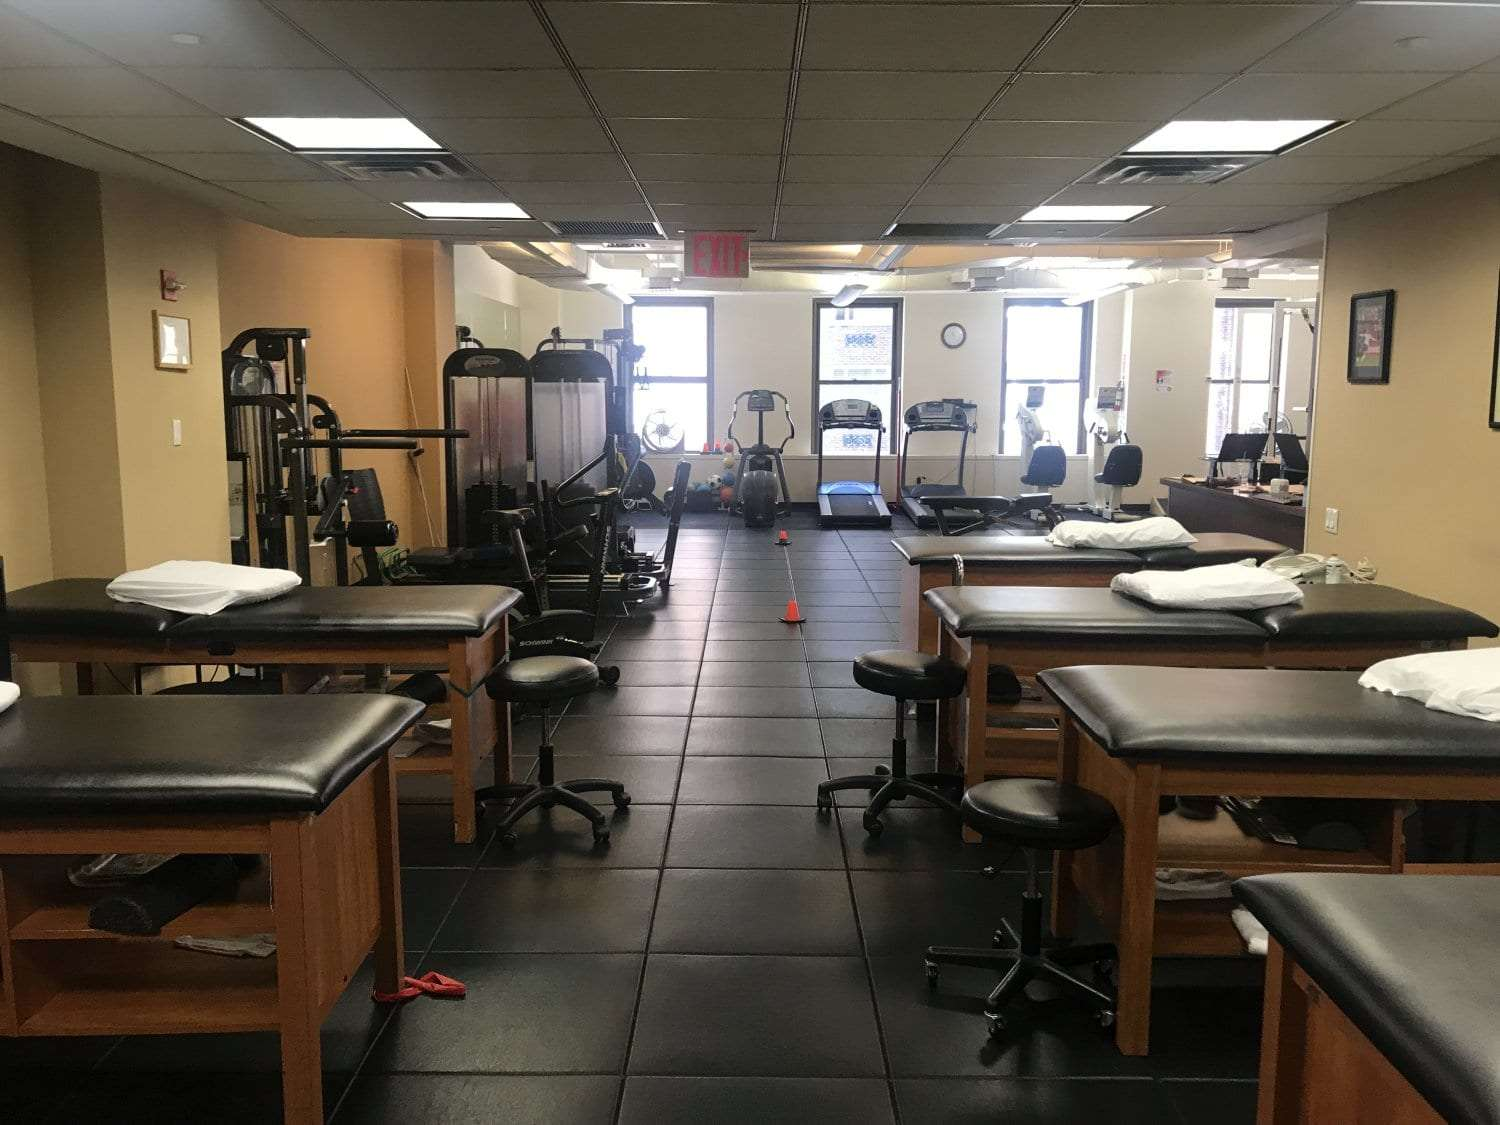 This is an image of the stretch beds and equipment used for physical therapy at our clinic in Manhattan, New York City at Midtown East.